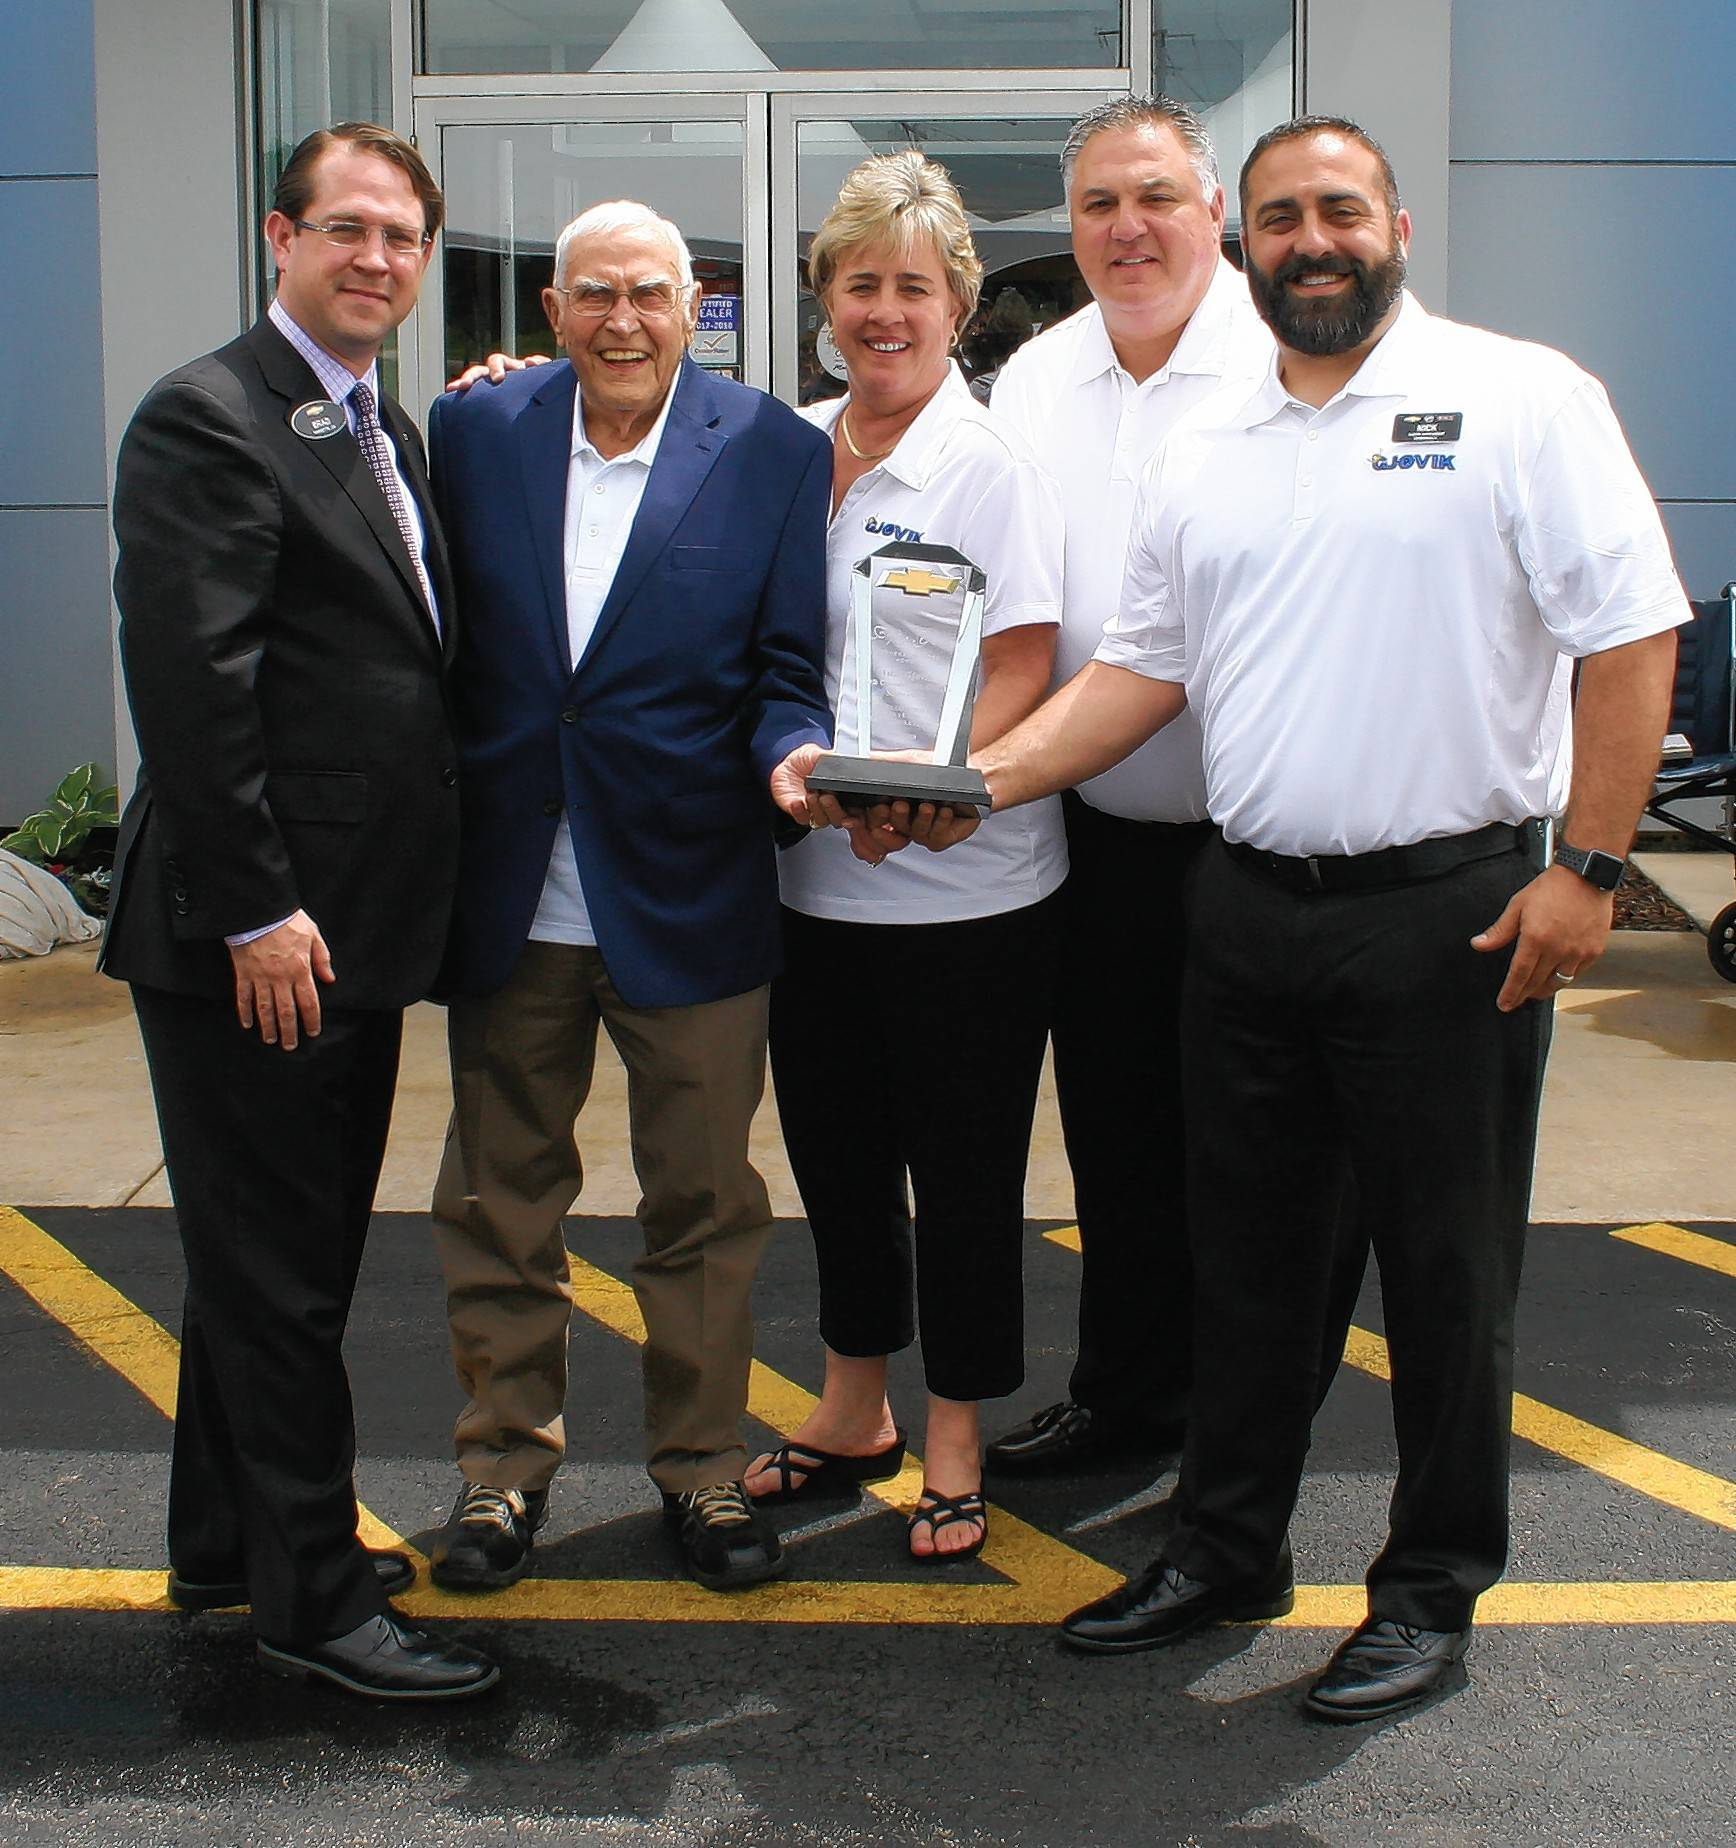 Brad Finley, Chevrolet Zone Manager, presents Olaf Gjovik with the 50 Year Award for this dealership milestone. Also pictured right of Gjovik's are employees Kris Mieszala, Fred Squillo and Nick Oeser.